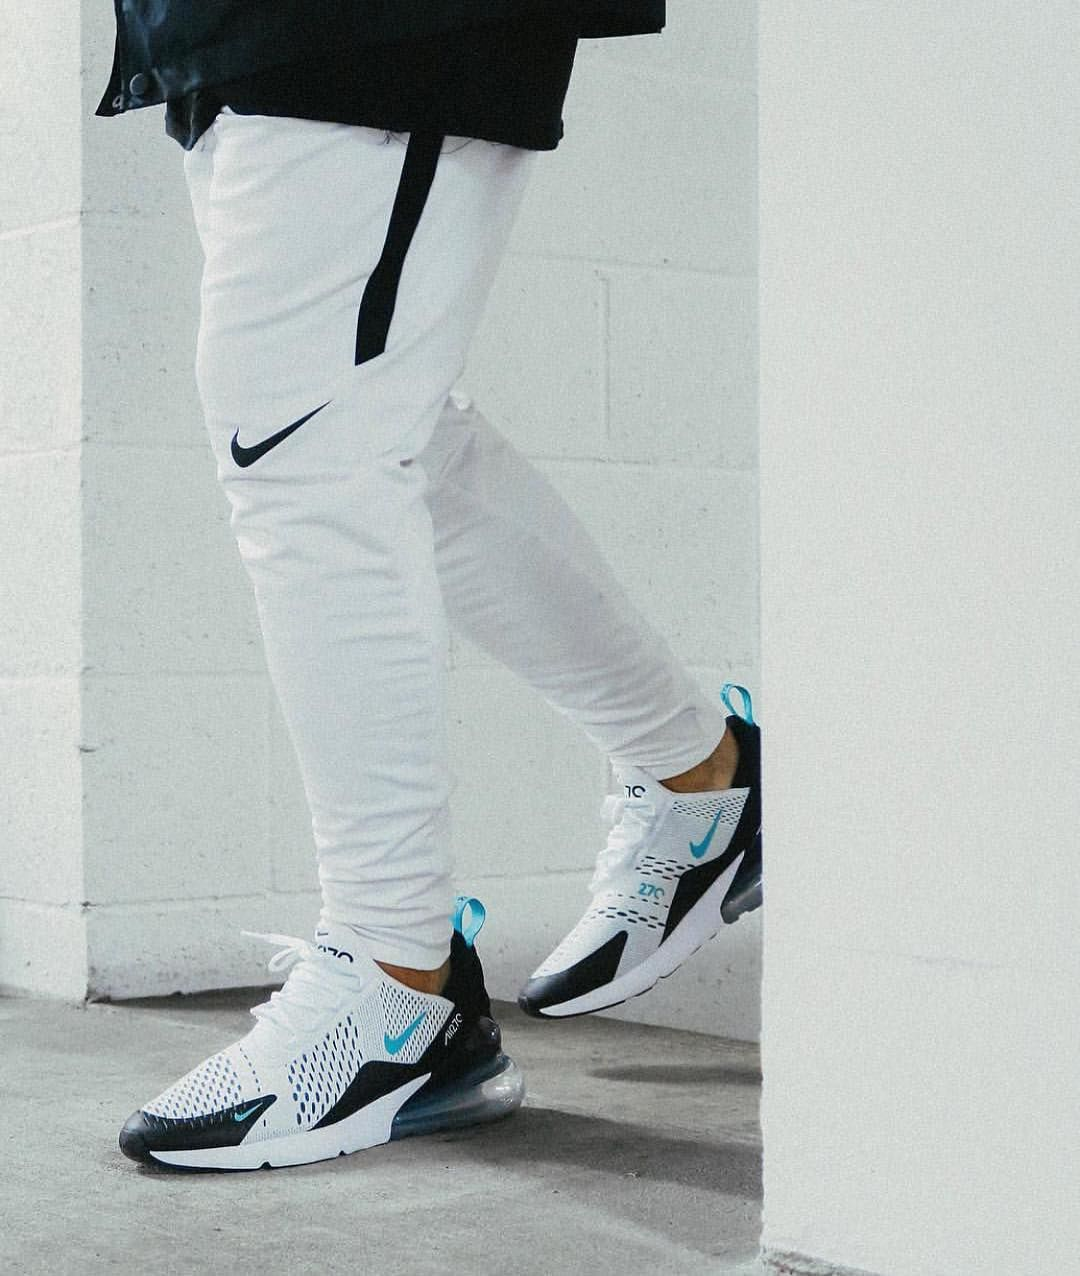 Thoughts On The Nike Air Max 270 Quot Dusty Cactus Quot